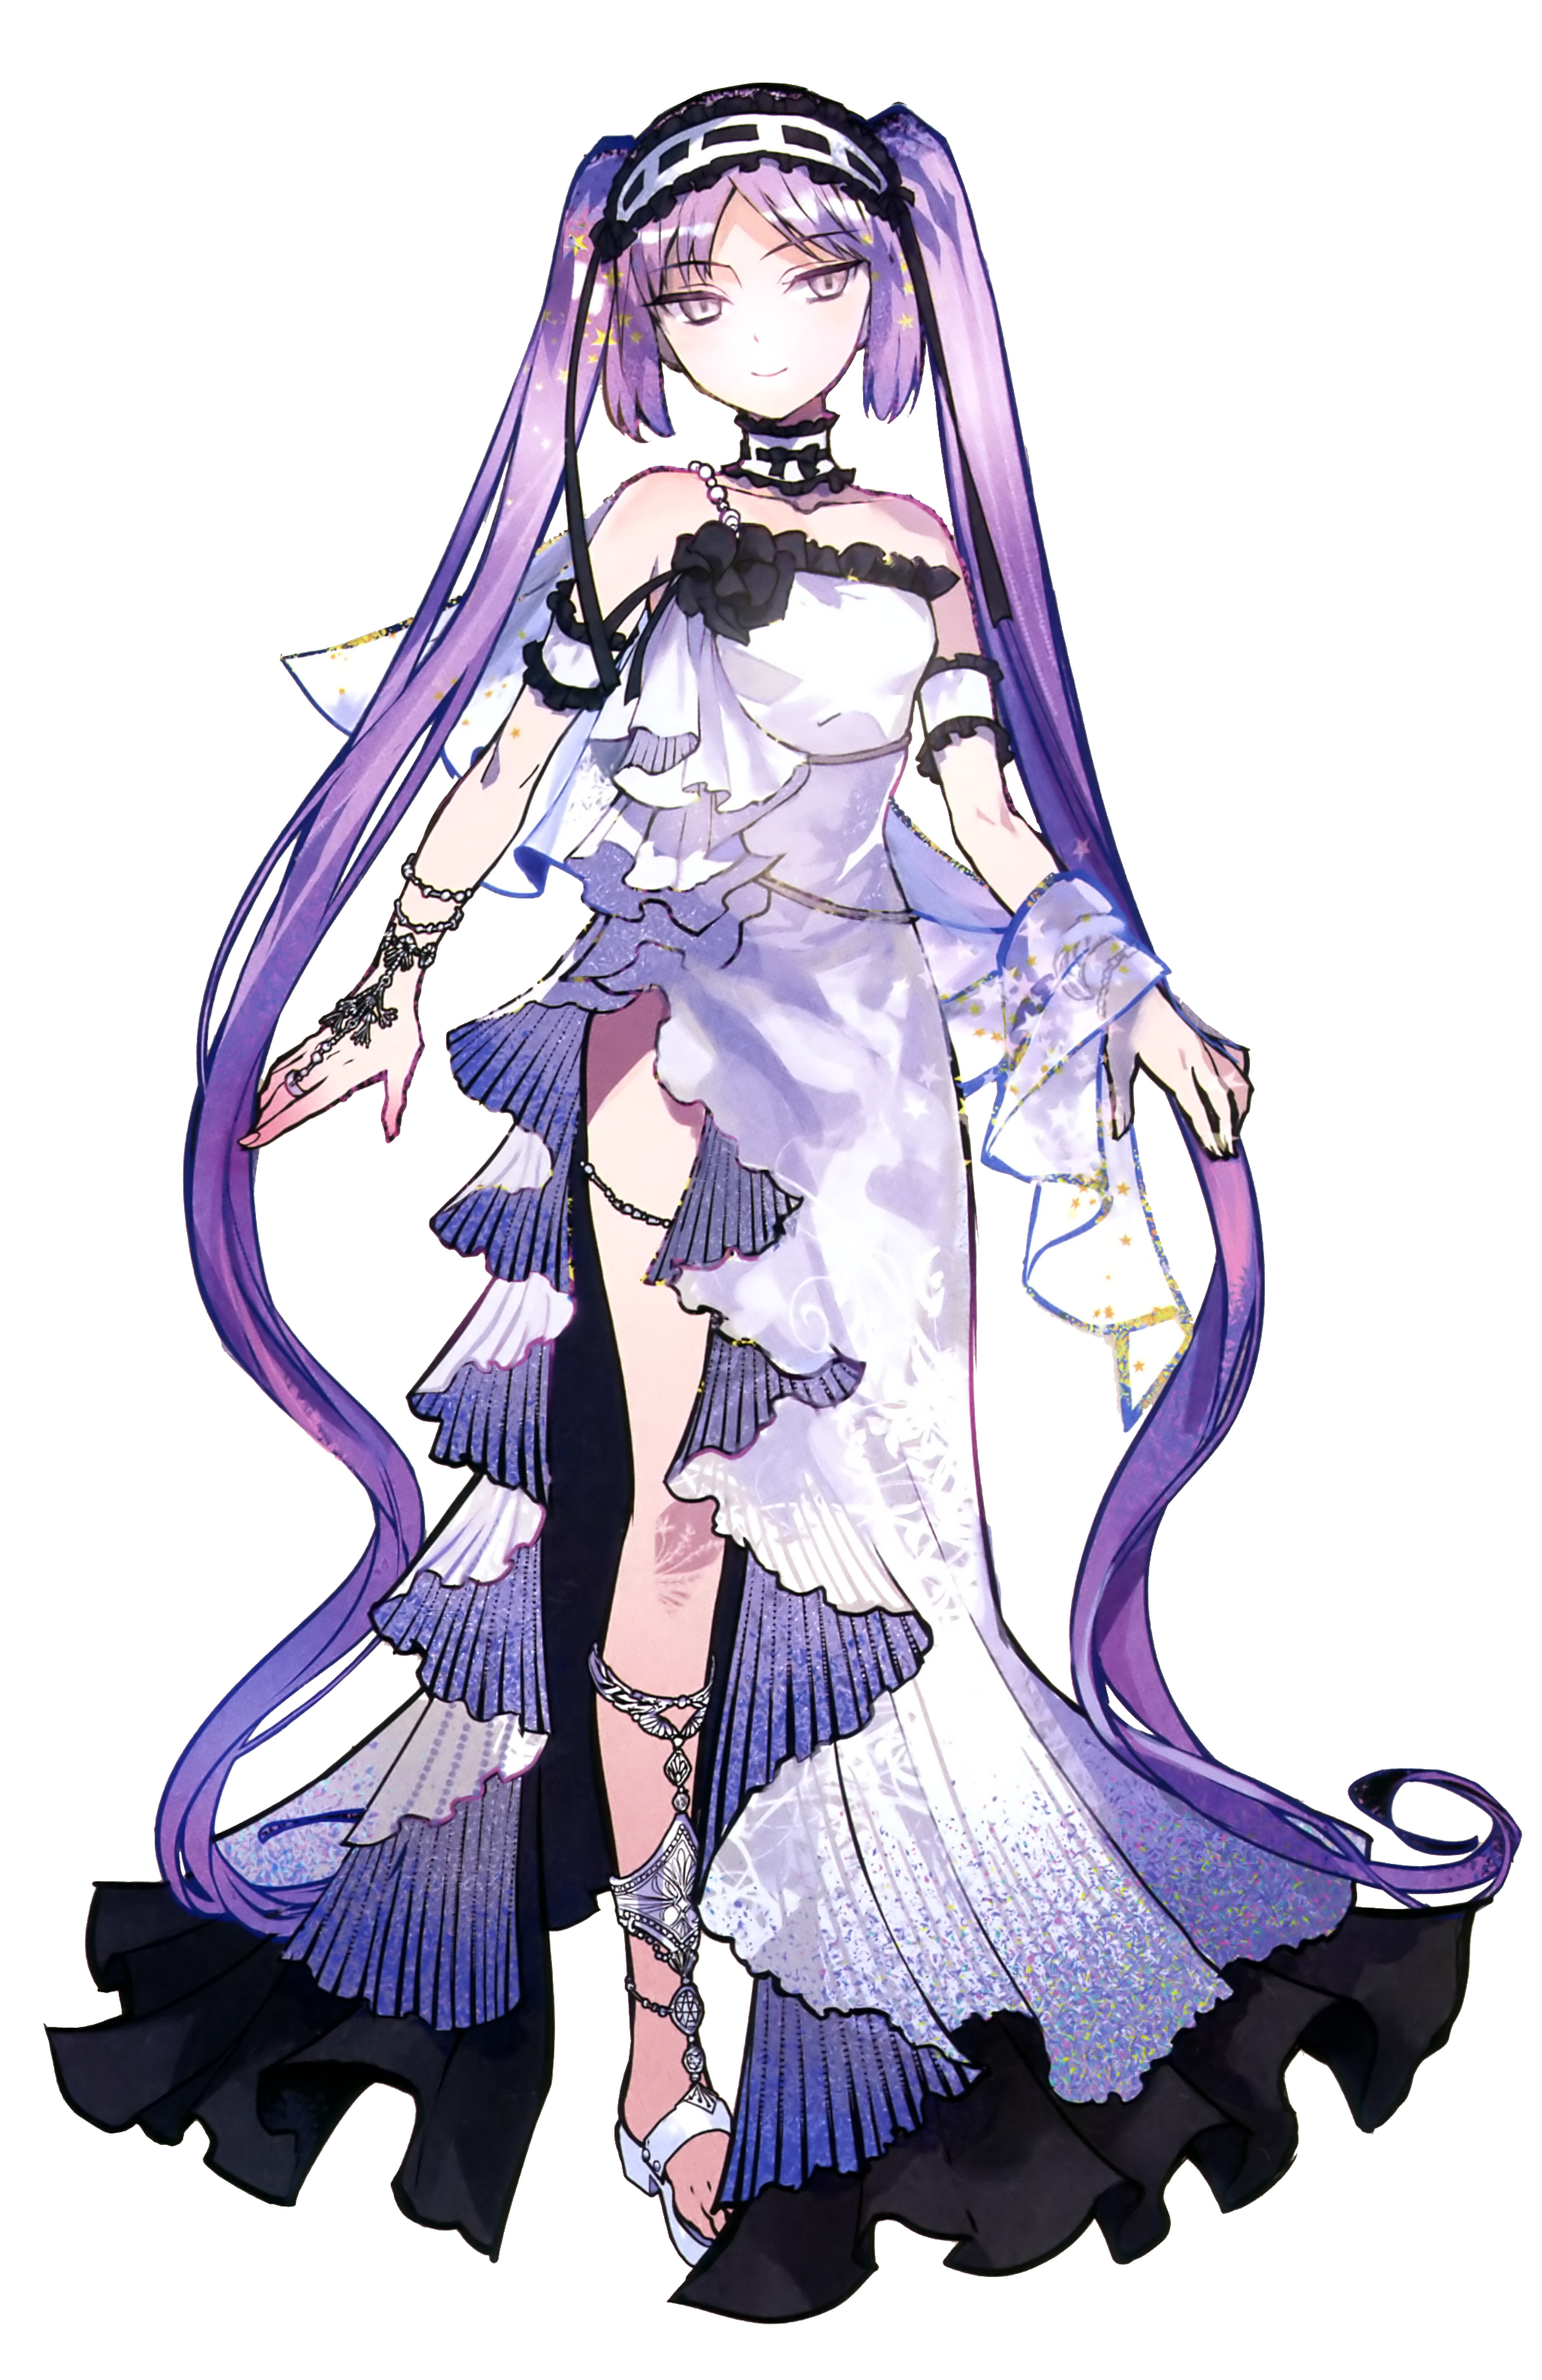 Gorgon drawing sisters. Archer of fate grand